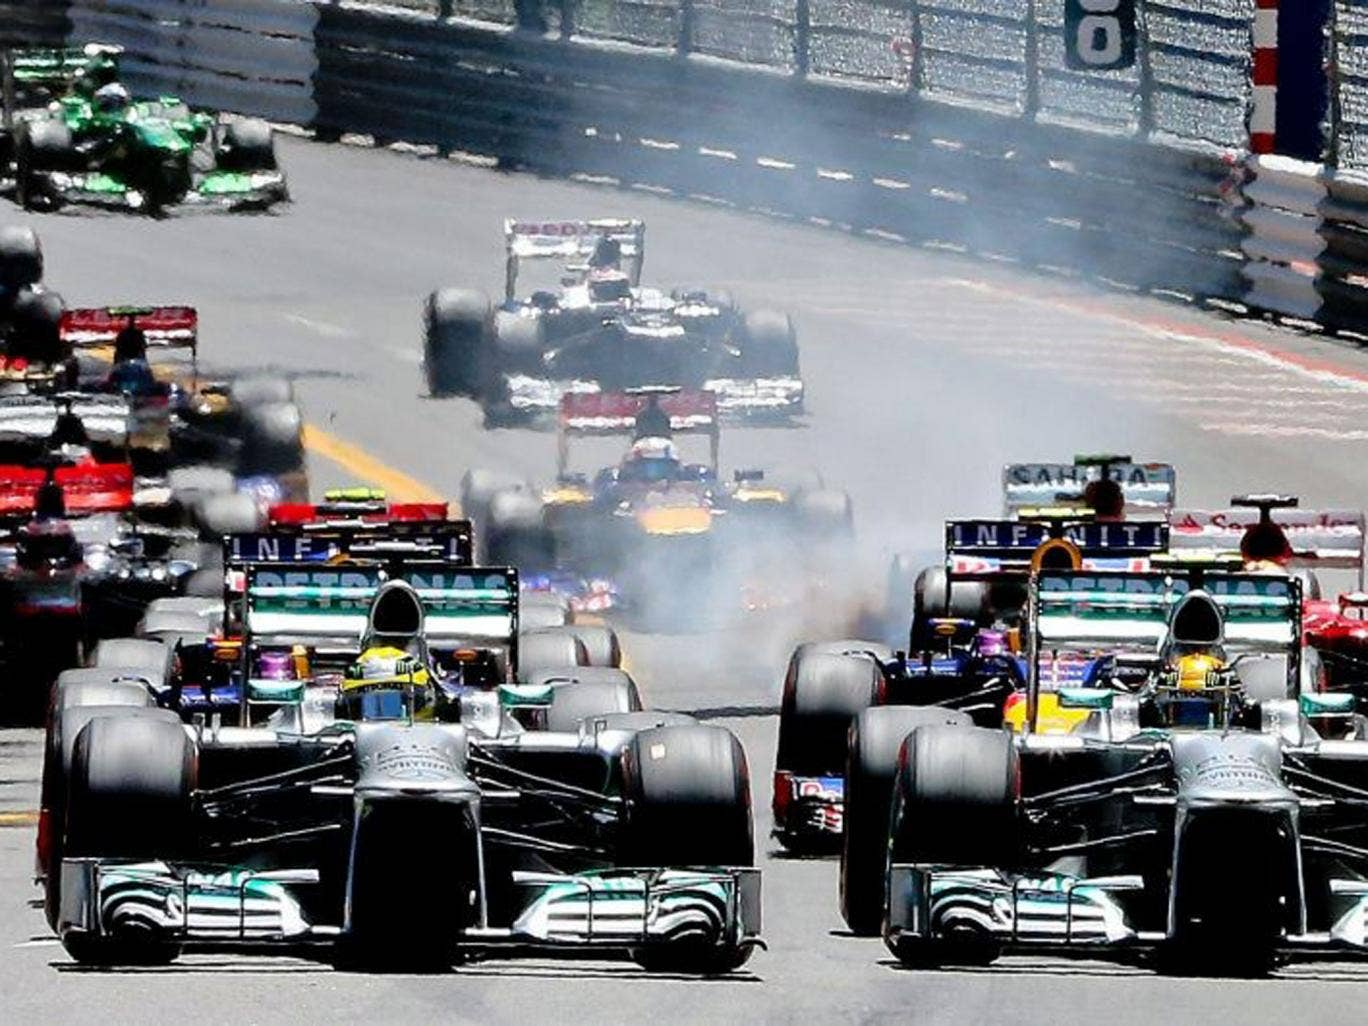 The pack of cars in action during the 2013 Monaco Grand Prix